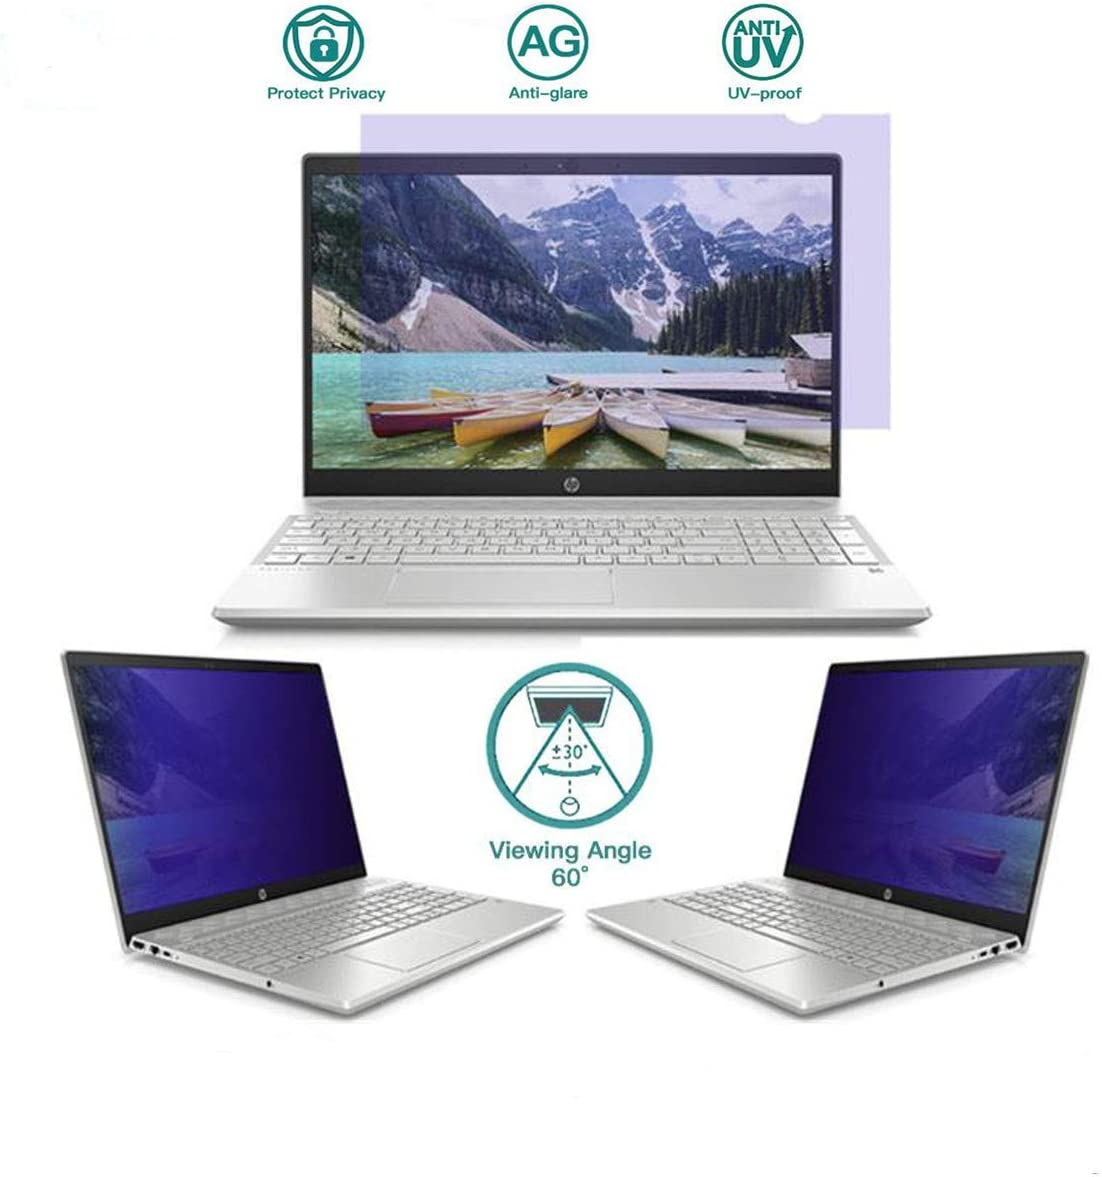 Honsdom Computer Privacy Screen Filter Laptop Anti Blue Light Screen Protector Monitor Security Film for 15.6 Inch (Aspect Ratio16:9) Lenovo,Dell,Surface Pro,HP Notebook Size (344mm194mm)